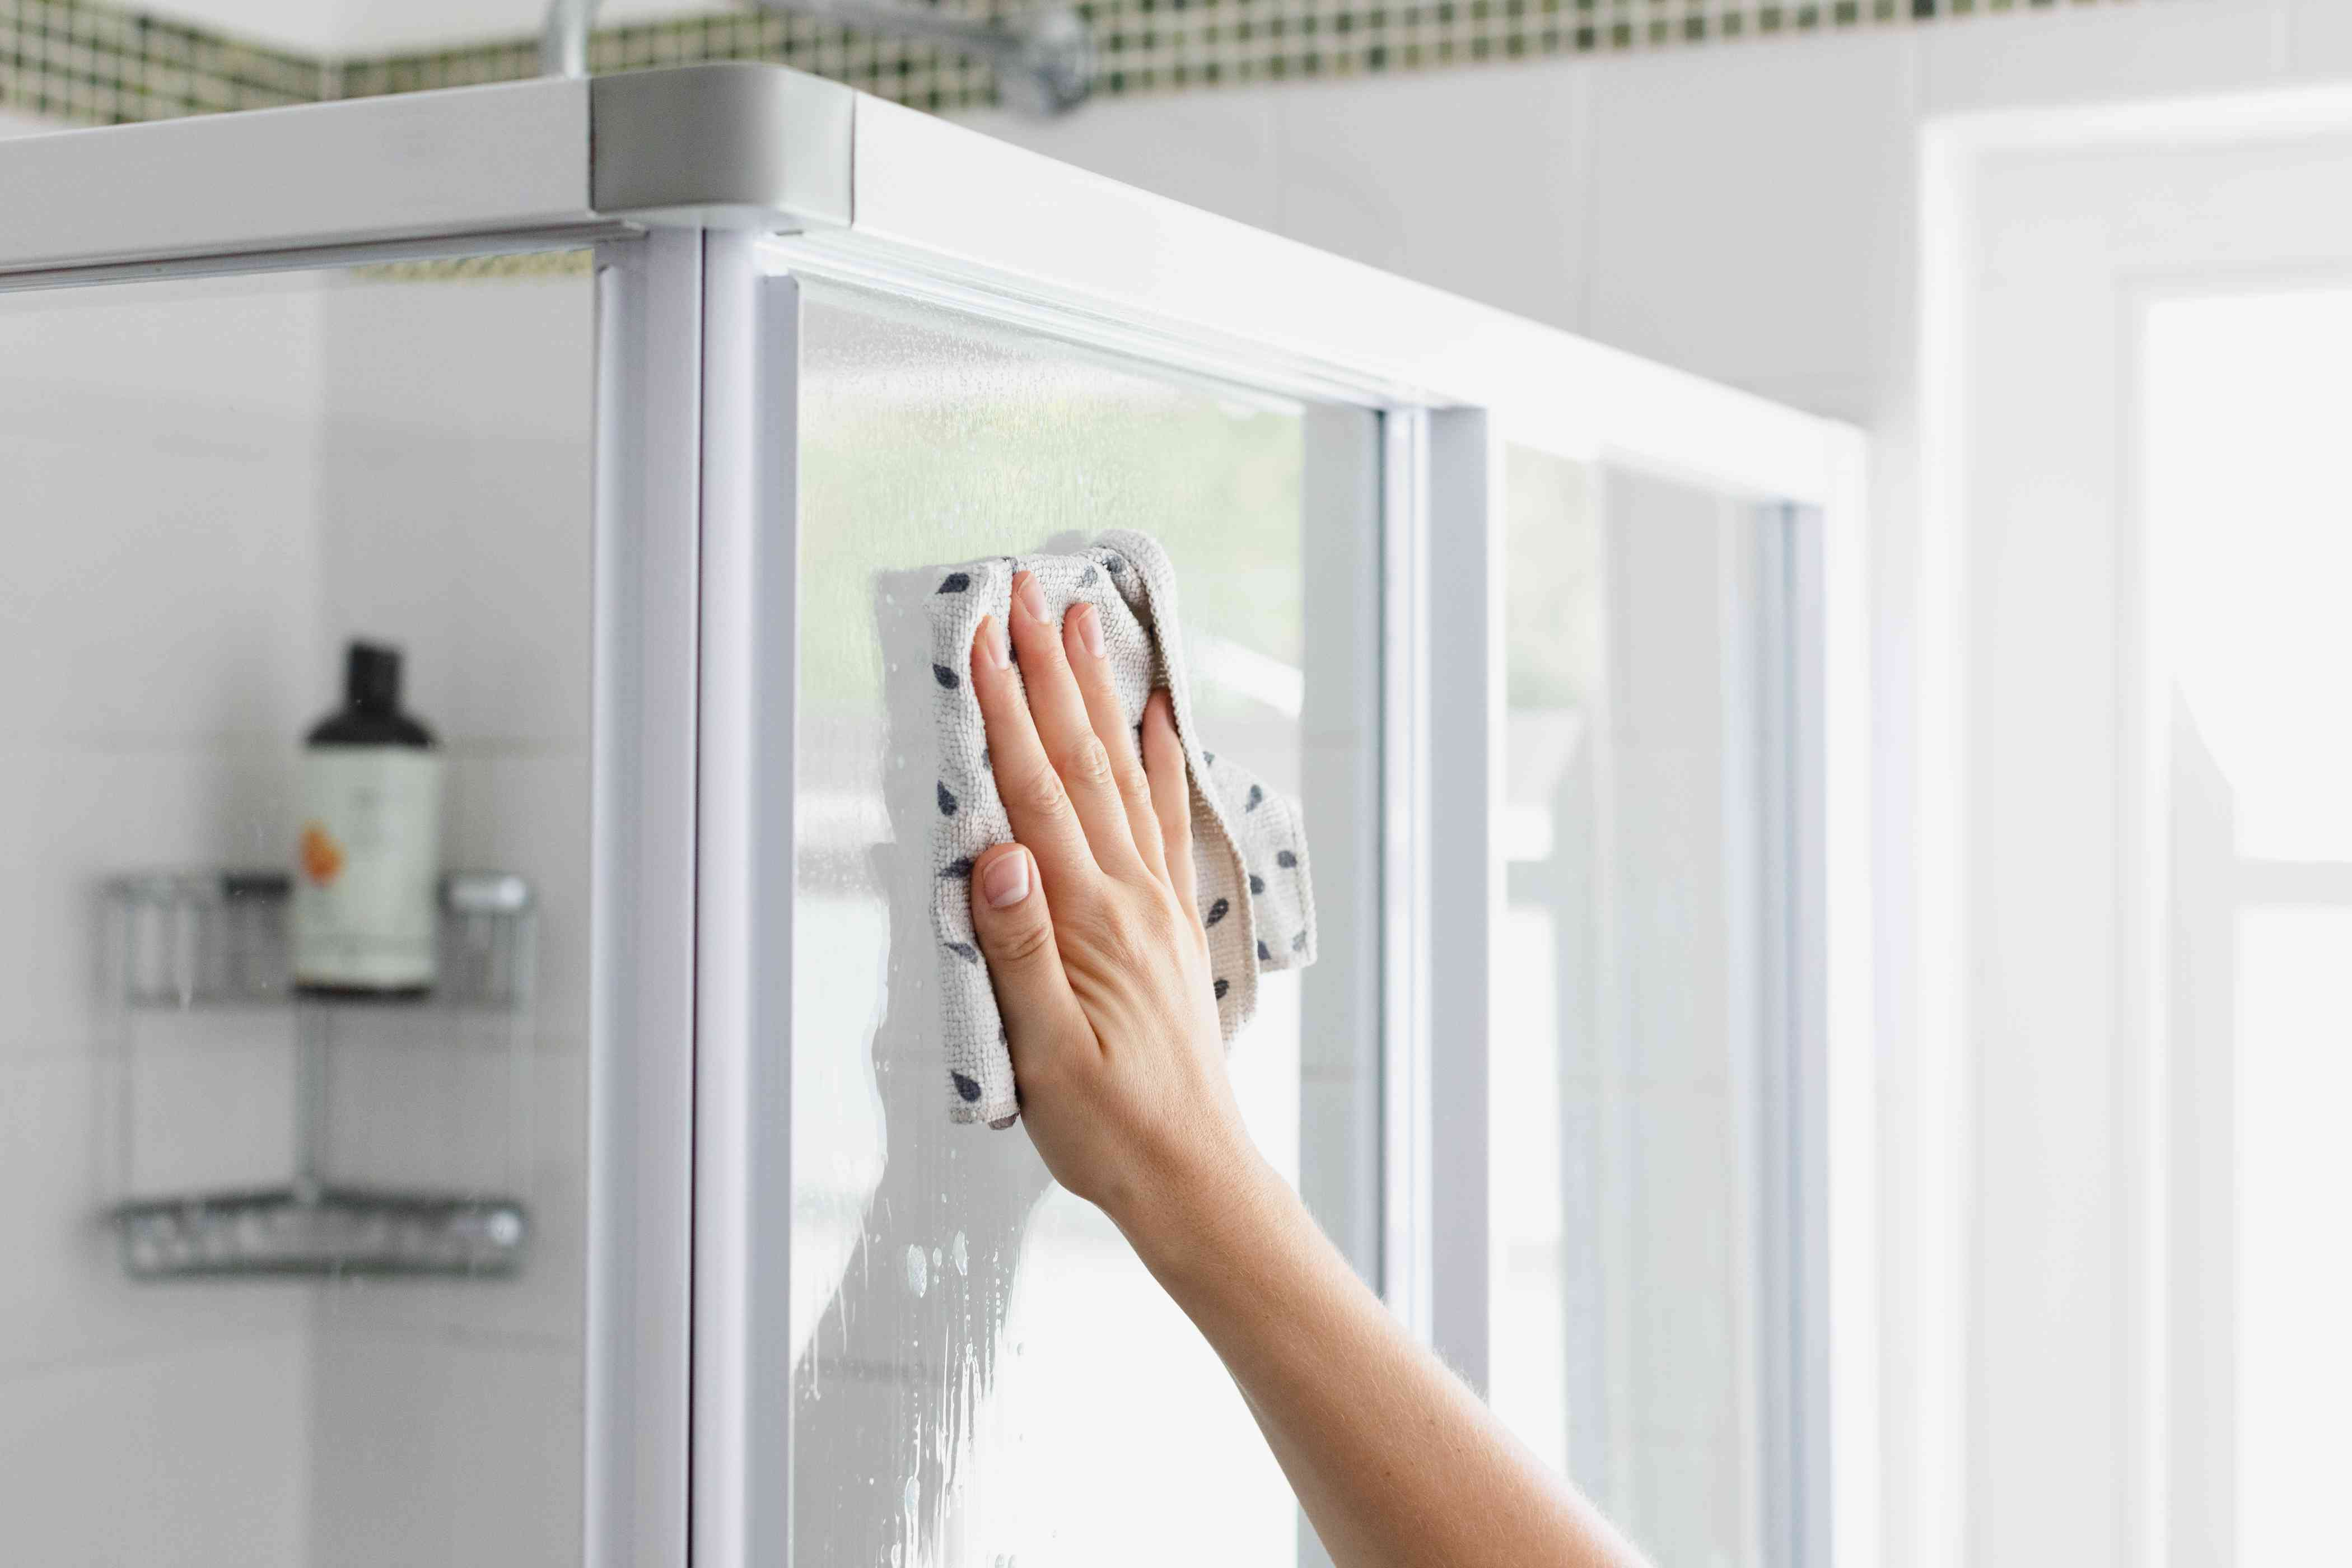 Shower glass doors wiped down with rag to reduce bathroom odors